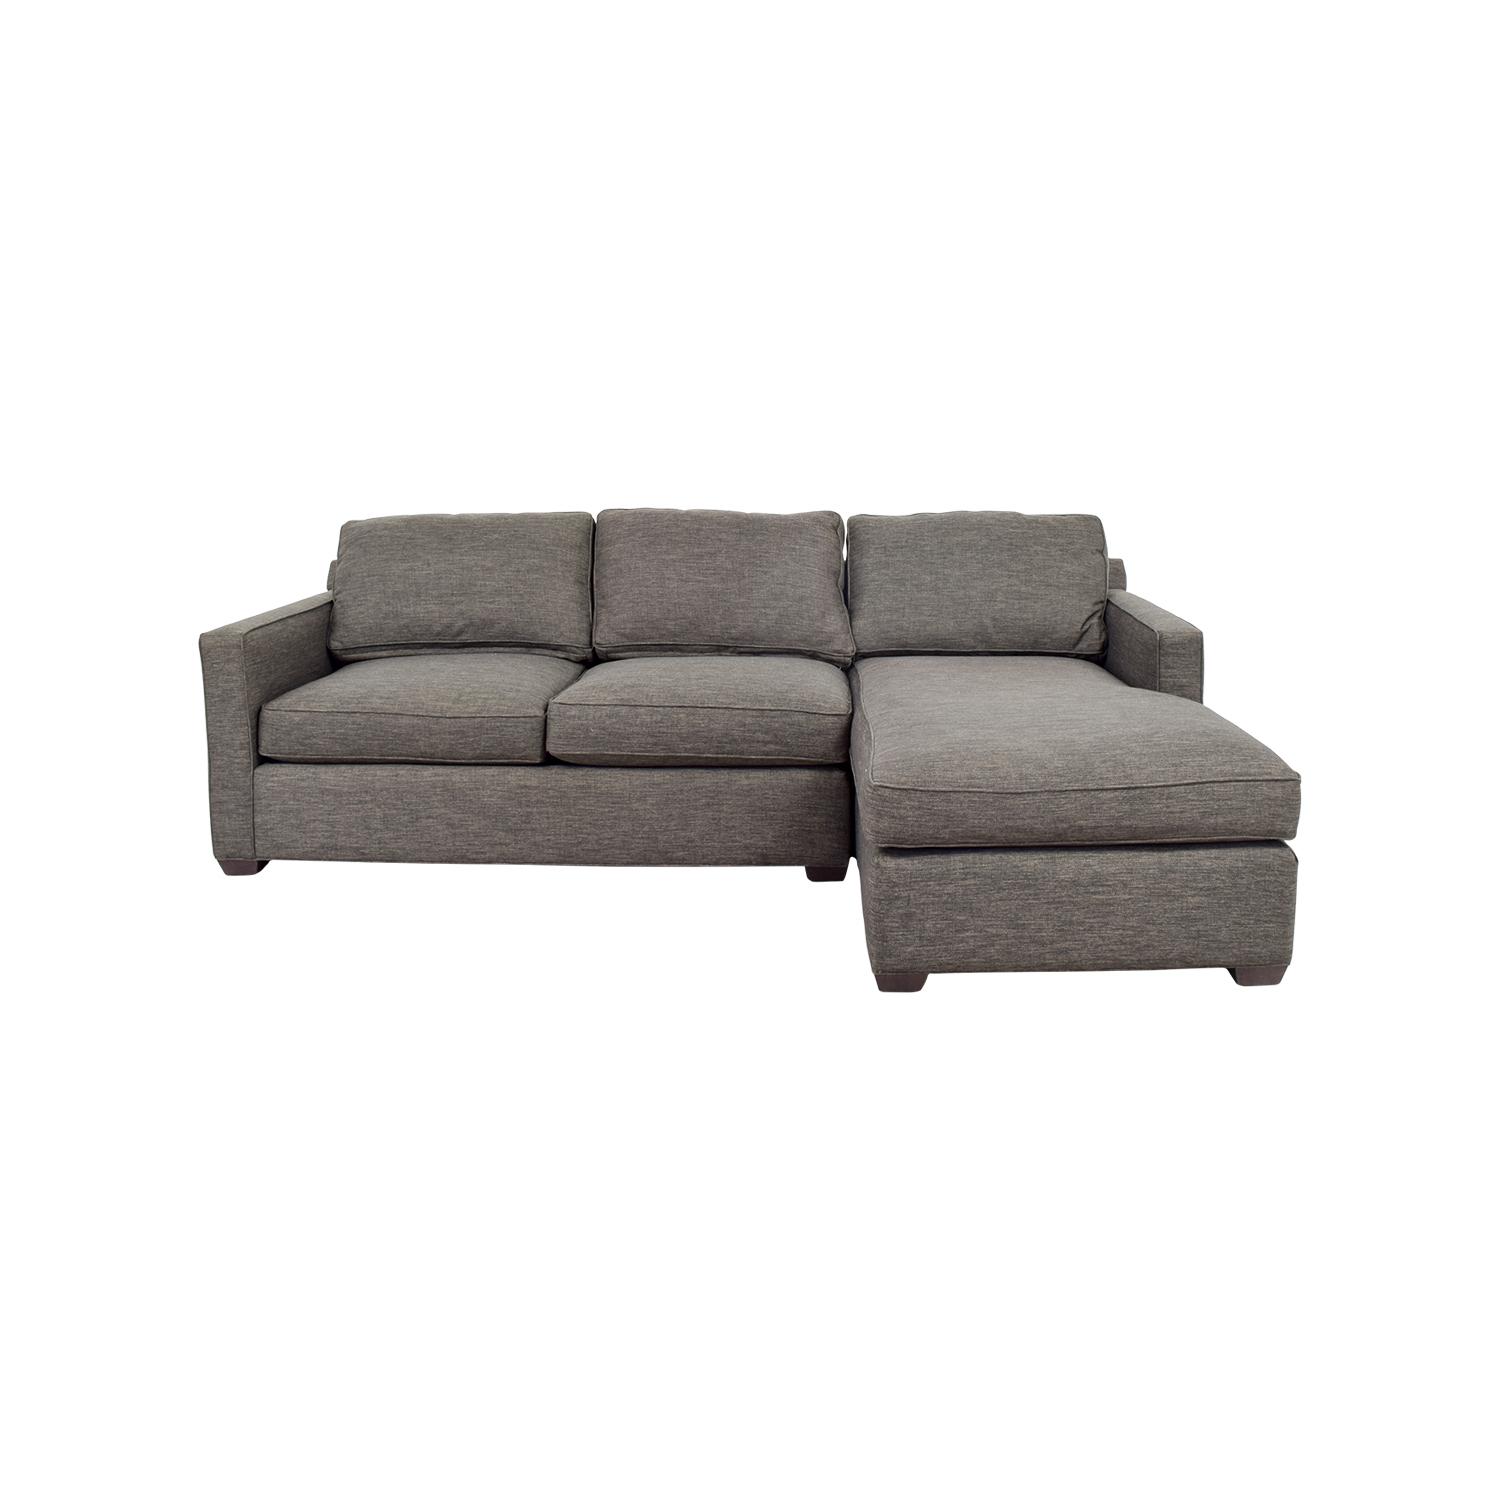 Crate and Barrel Crate & Barrel Davis Grey Chaise Sectional on sale